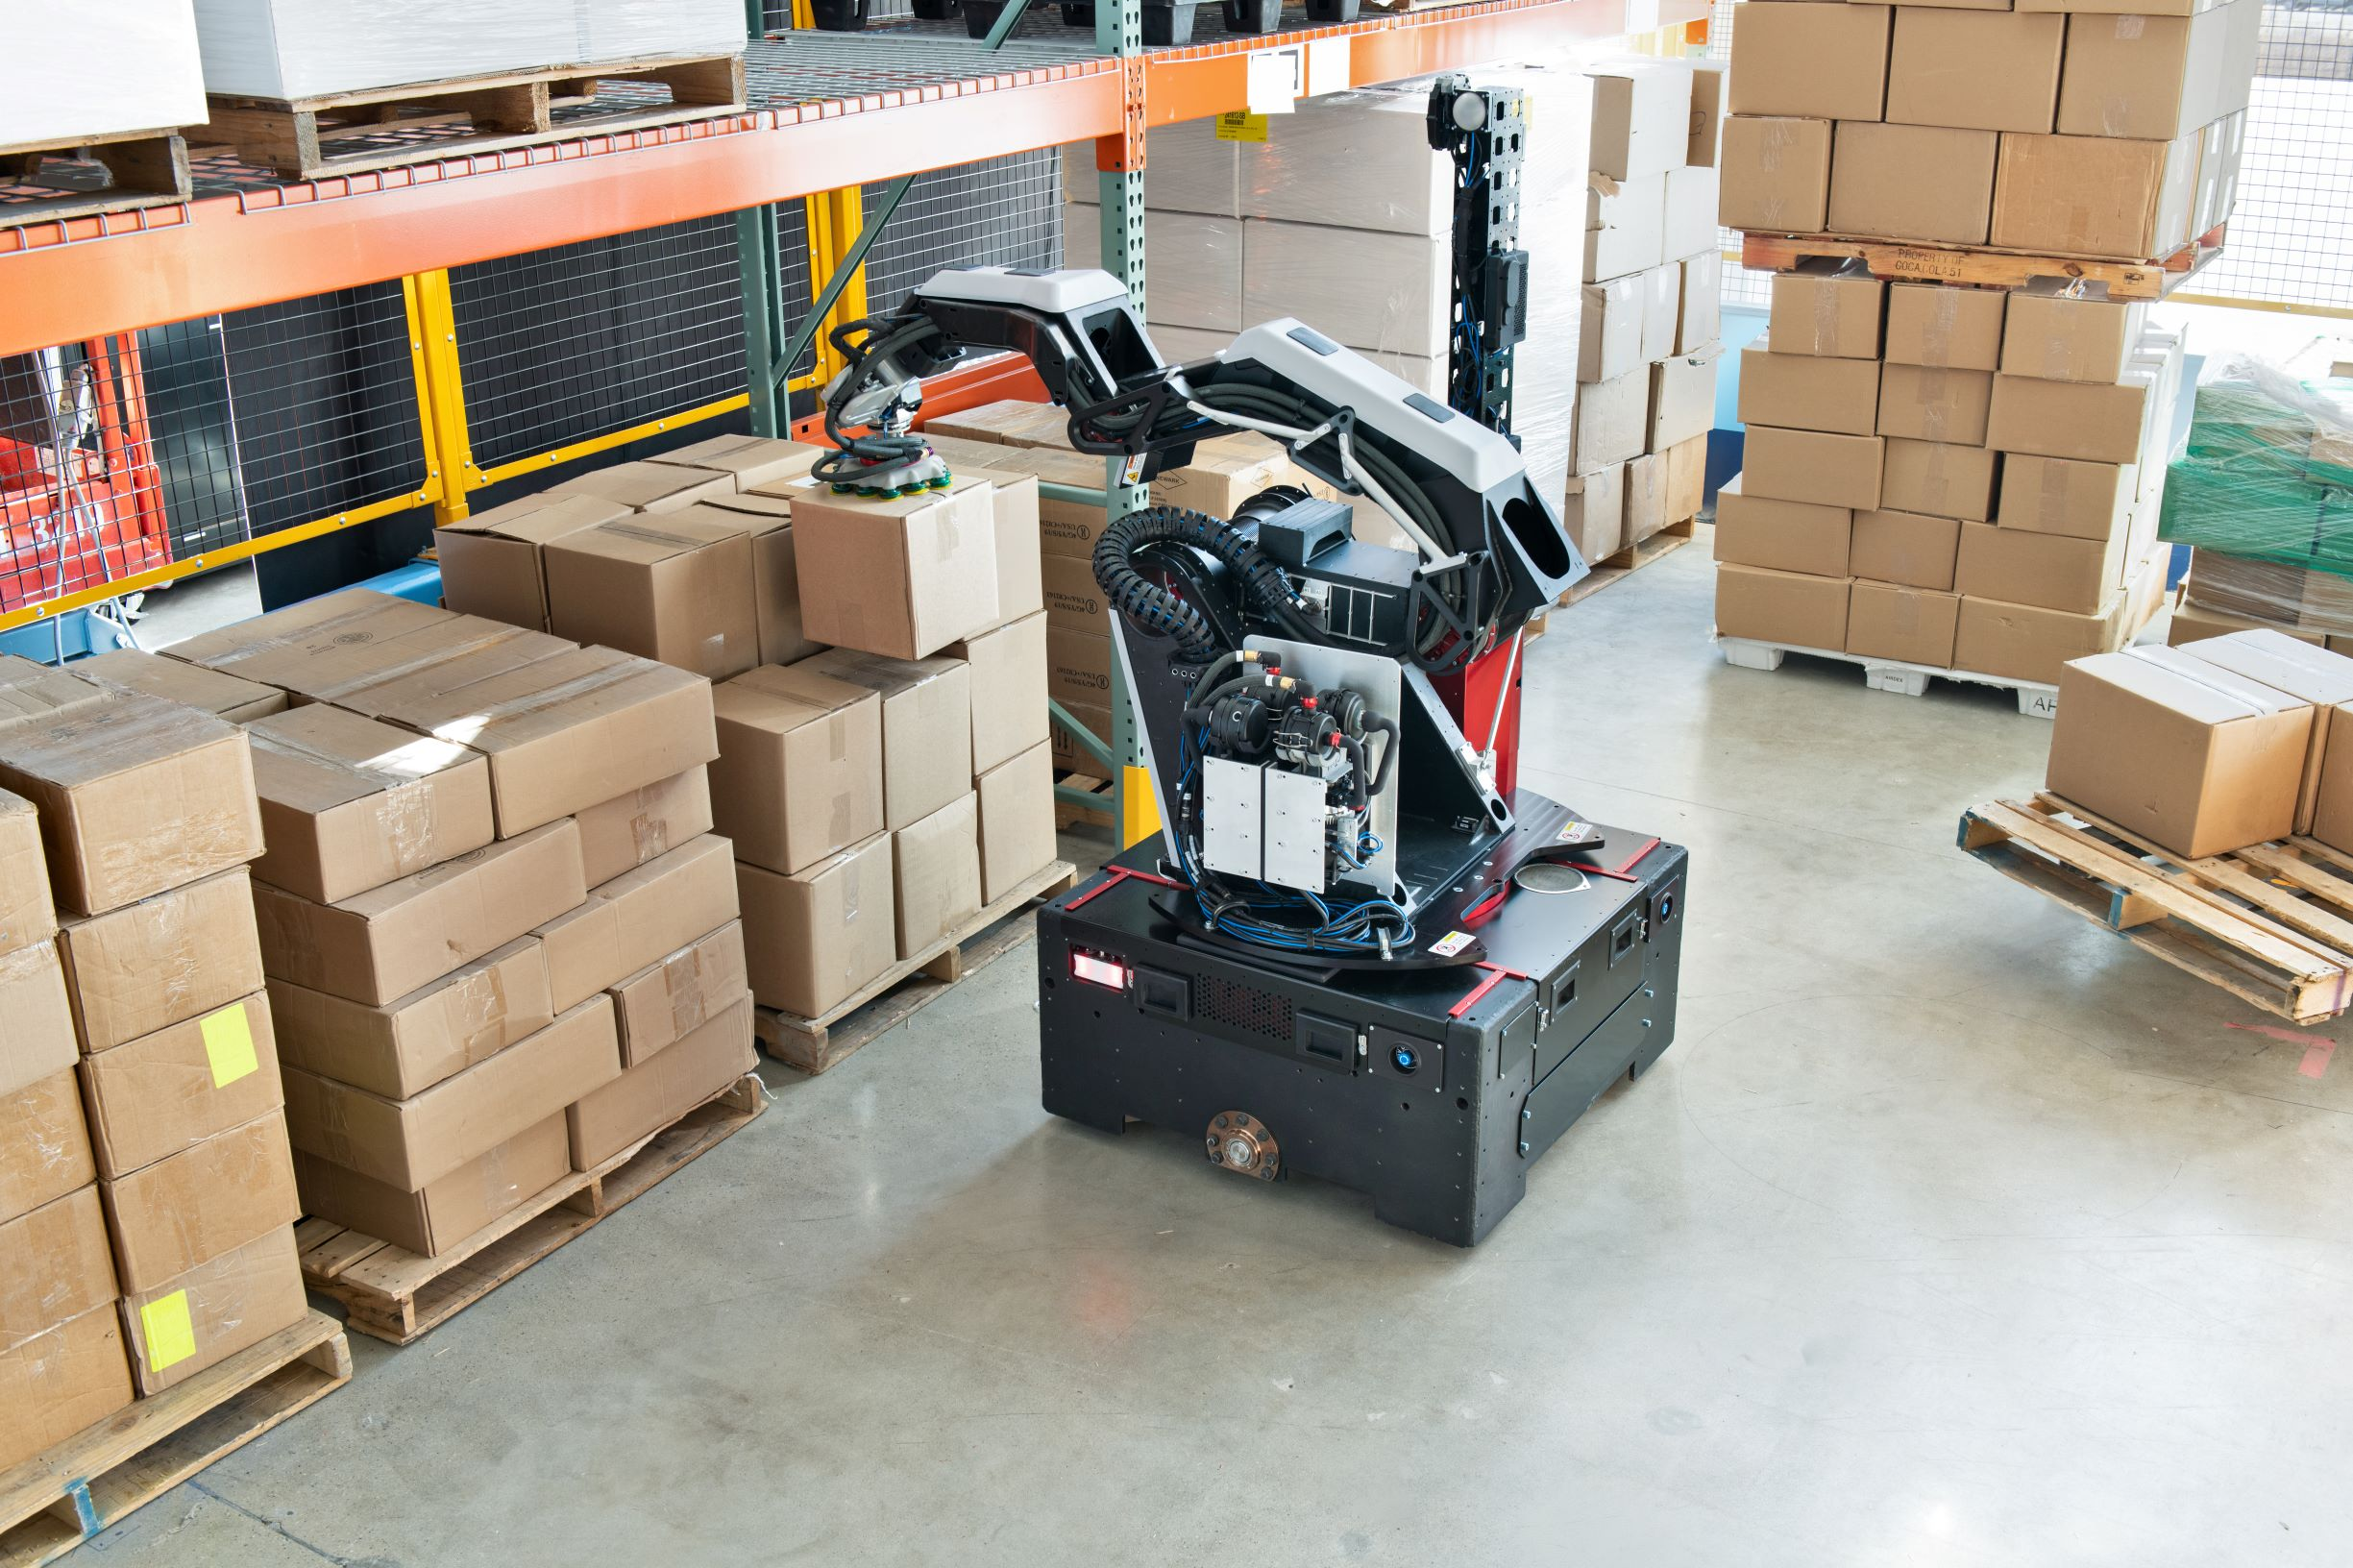 Boston Dynamics' new warehouse robot, Stretch, moves 800 boxes an hour